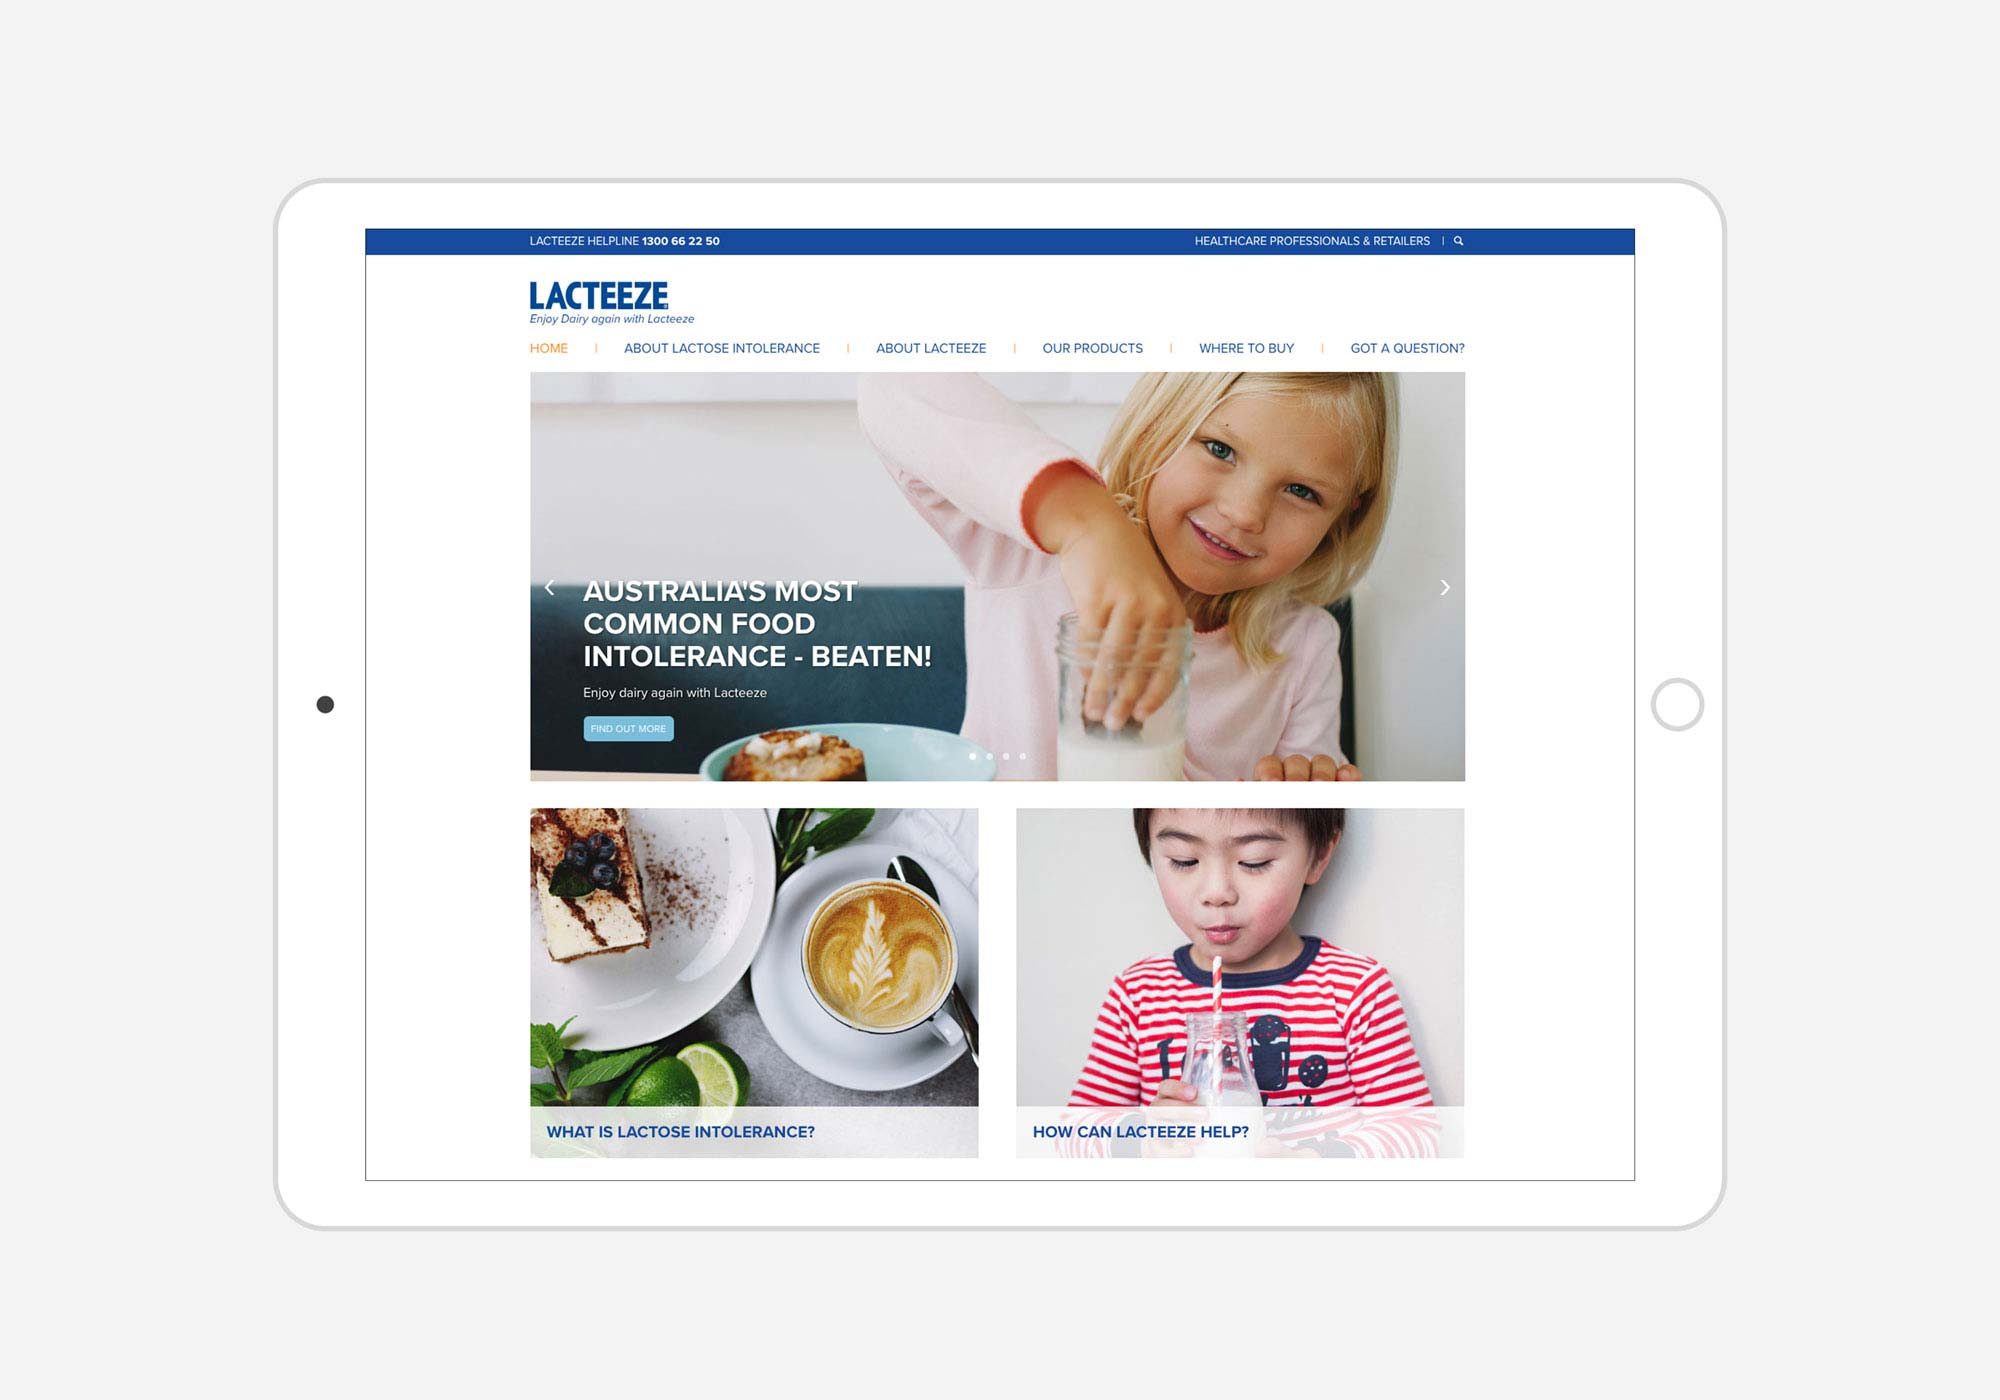 Lacteeze home page